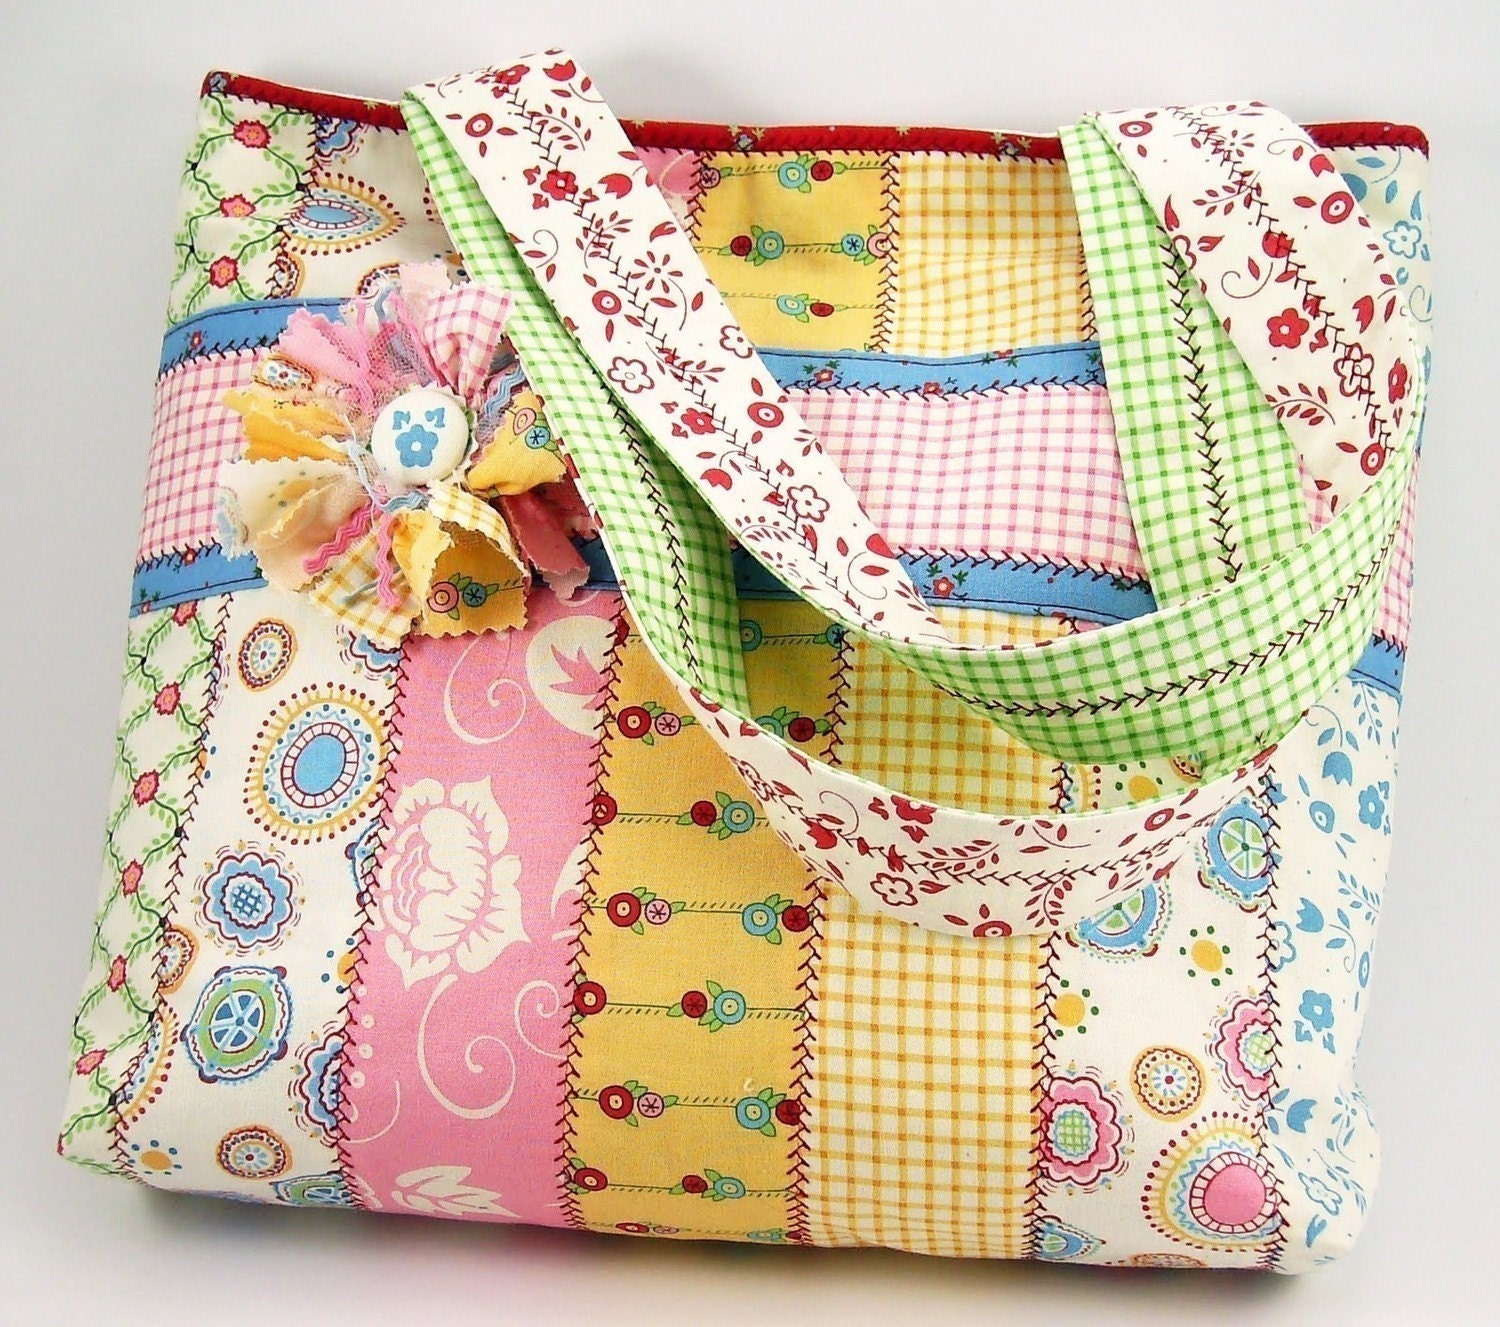 Bags And Purses Patterns : Jelly Roll Tote Bag Sewing Pattern with by SundayGirlDesigns